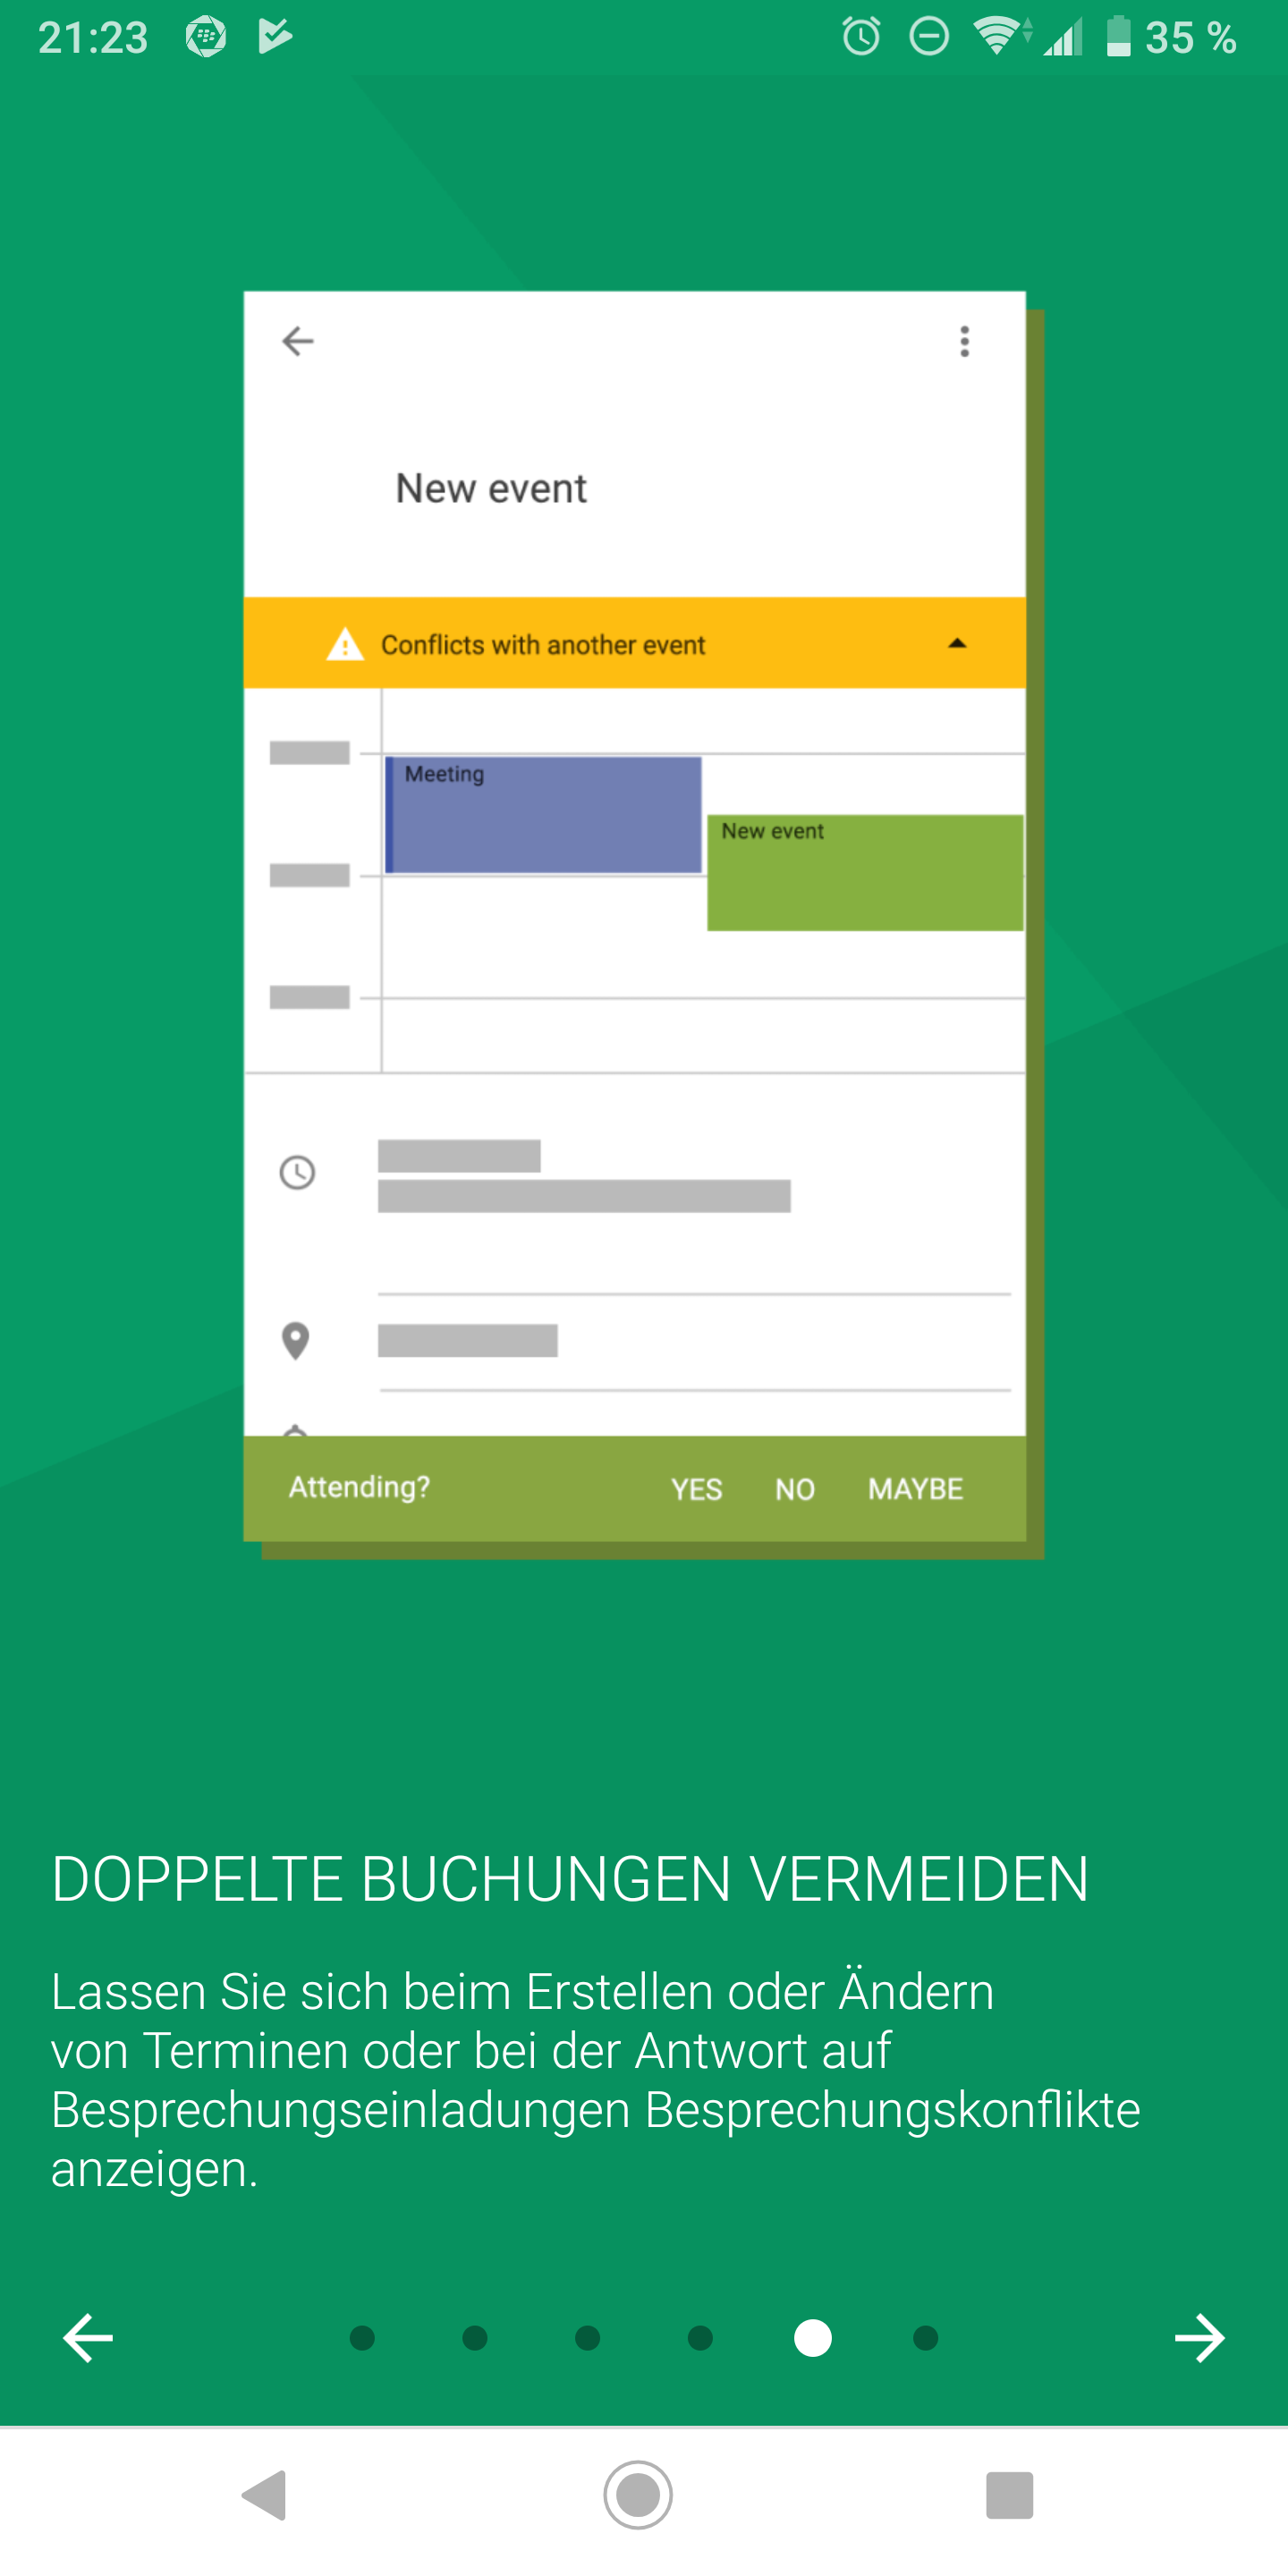 BlackBerry Android Apps Beta: Komplettes Redesign